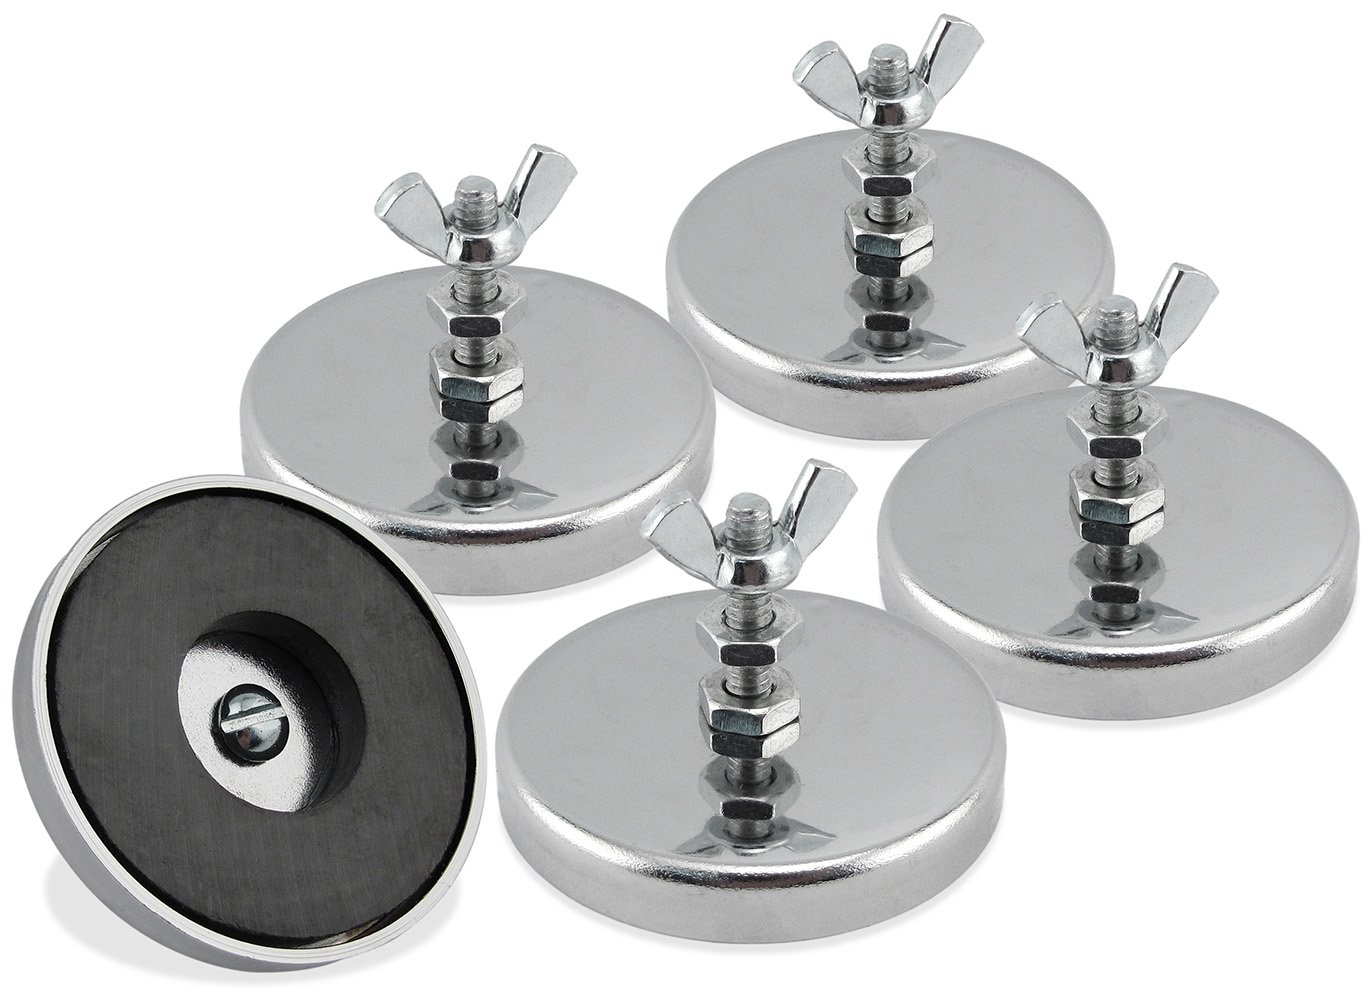 """Master Magnetics RB50B2NWX5 Ferrite/Low Carbon Steel Round Base Magnet Fastener with Bolt and Wing Nut, Chrome Plate, 2.04"""" Diameter, 1.25"""" Total Height, 35 lb, Silver (Pack of 5)"""